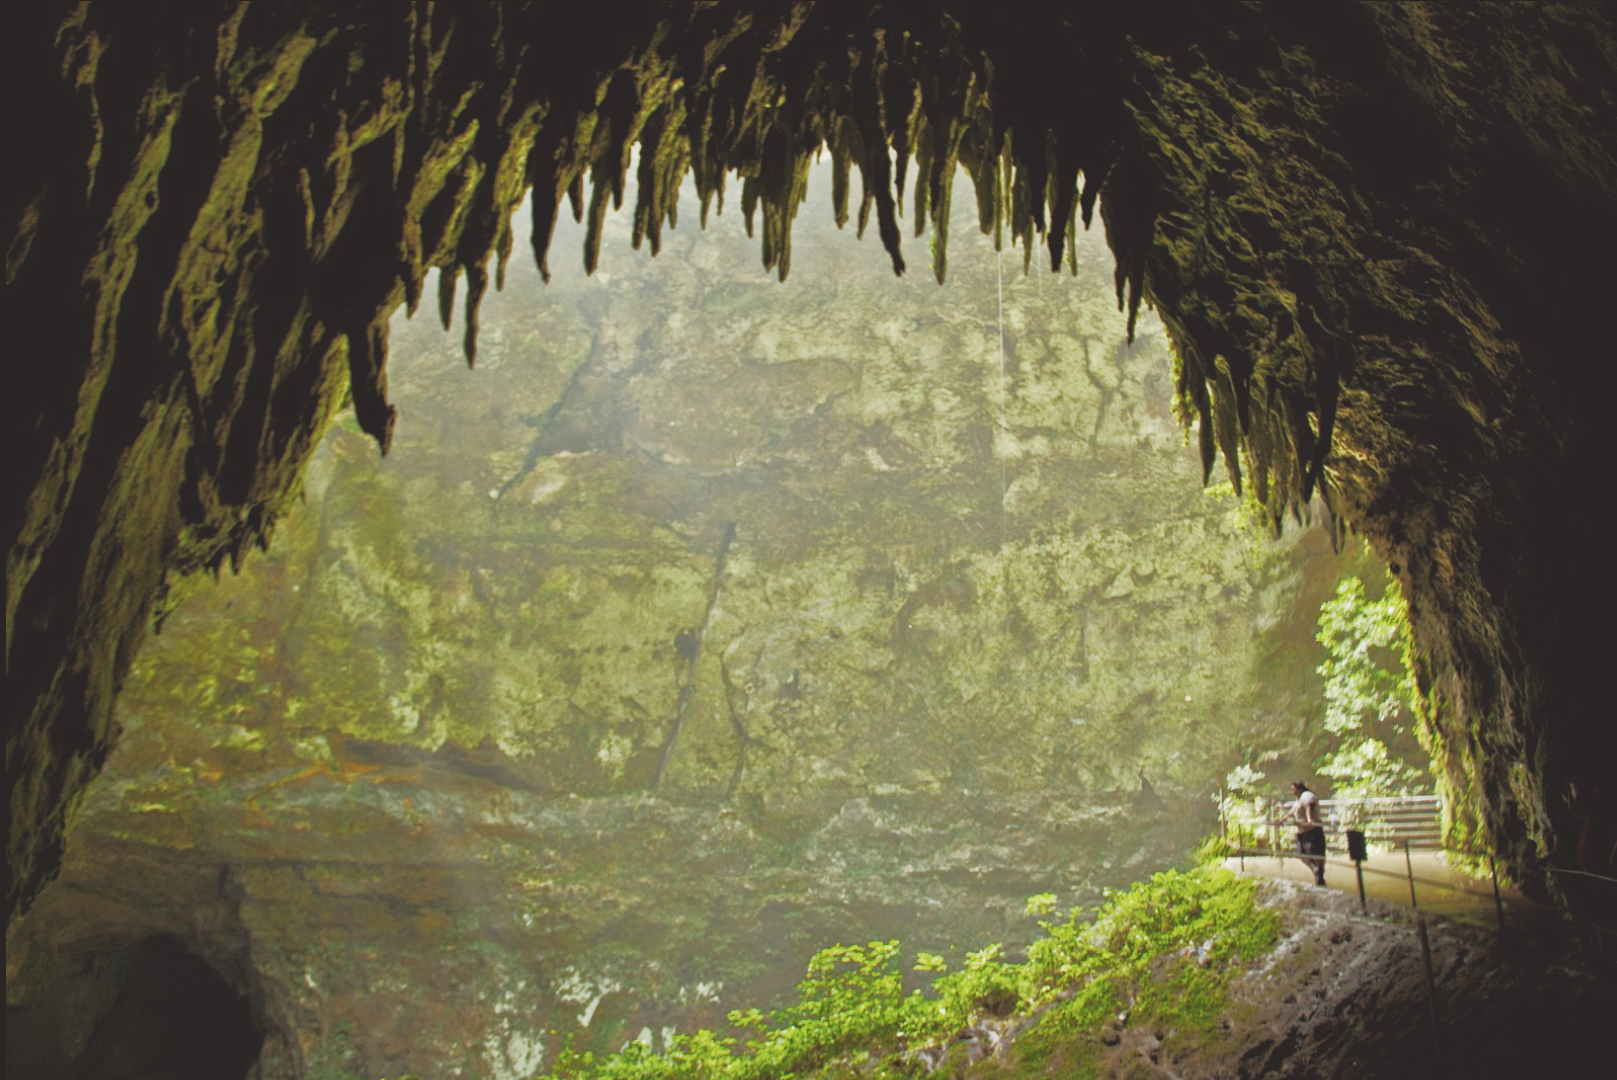 Camuy River Cave Park